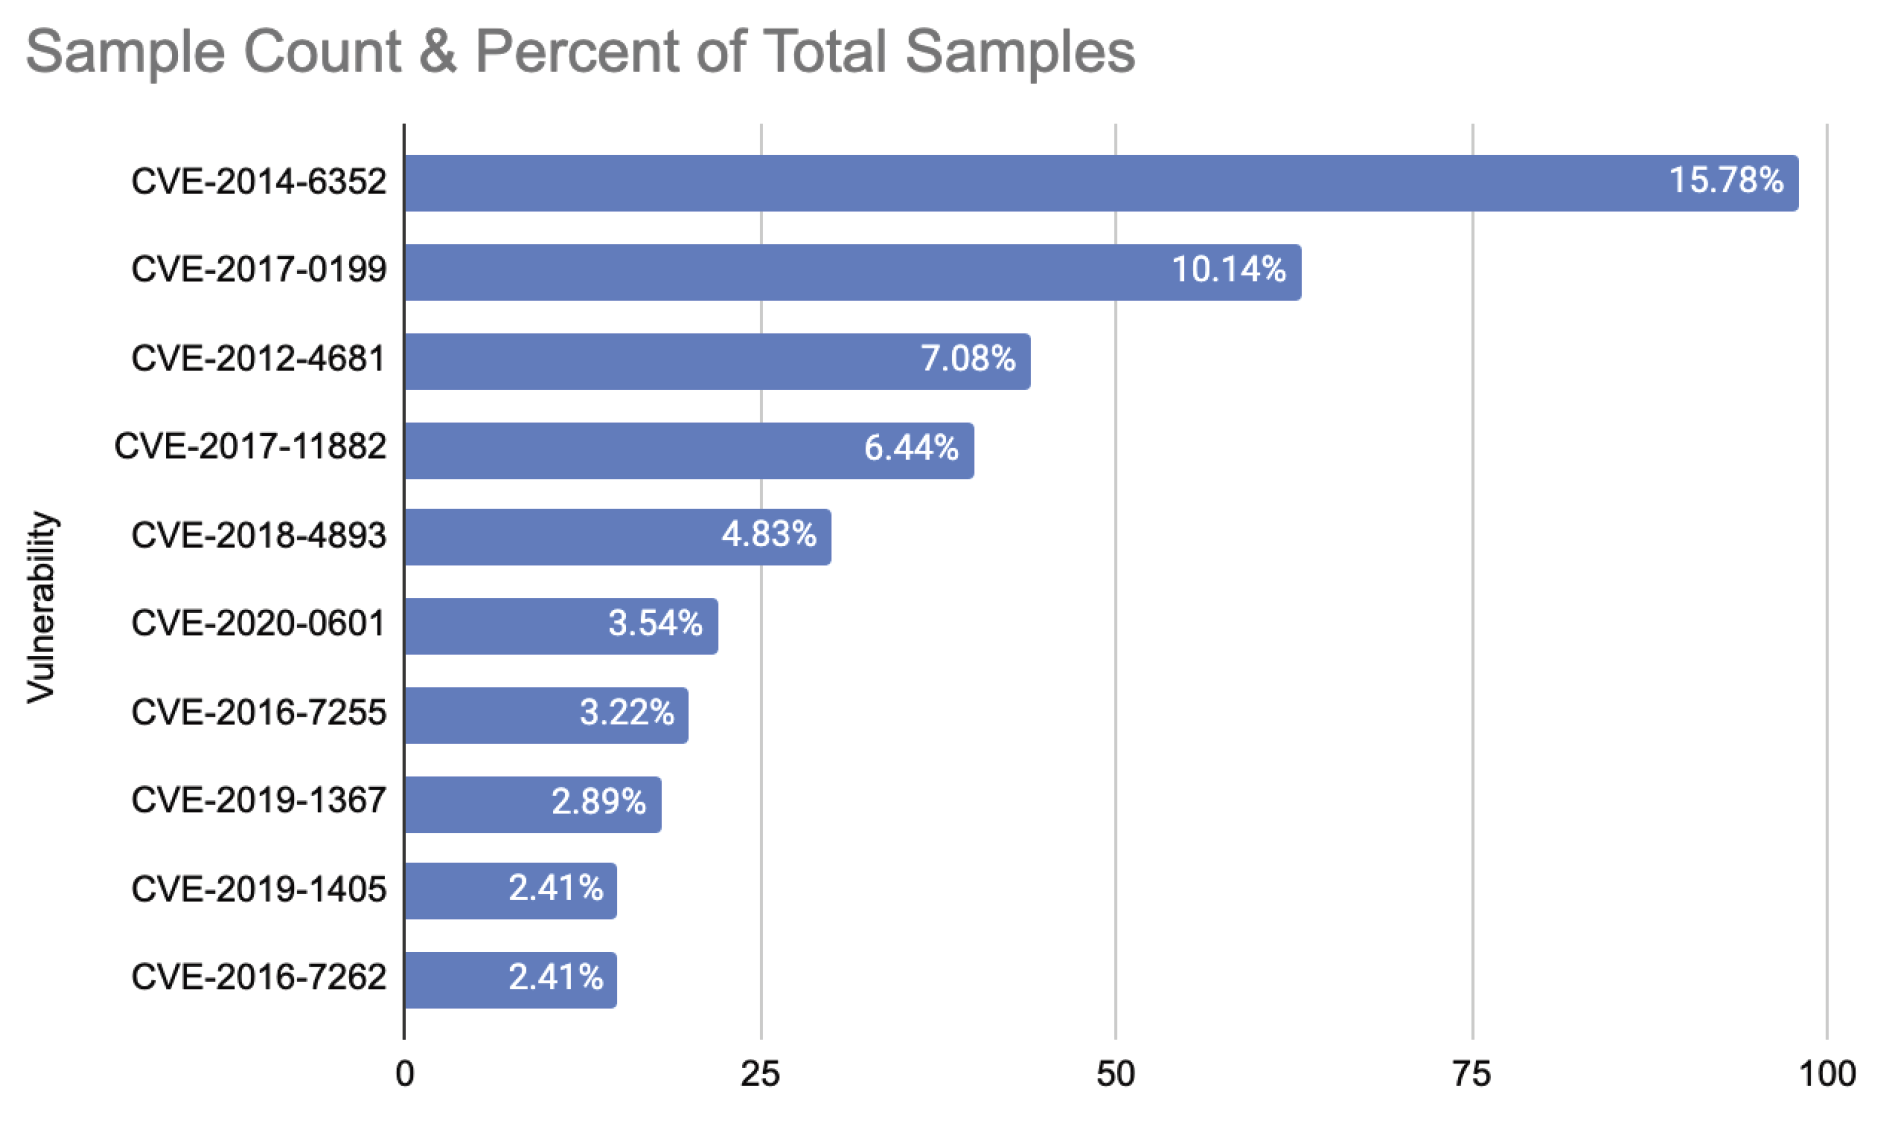 Sample Count and Percent of Total Samples